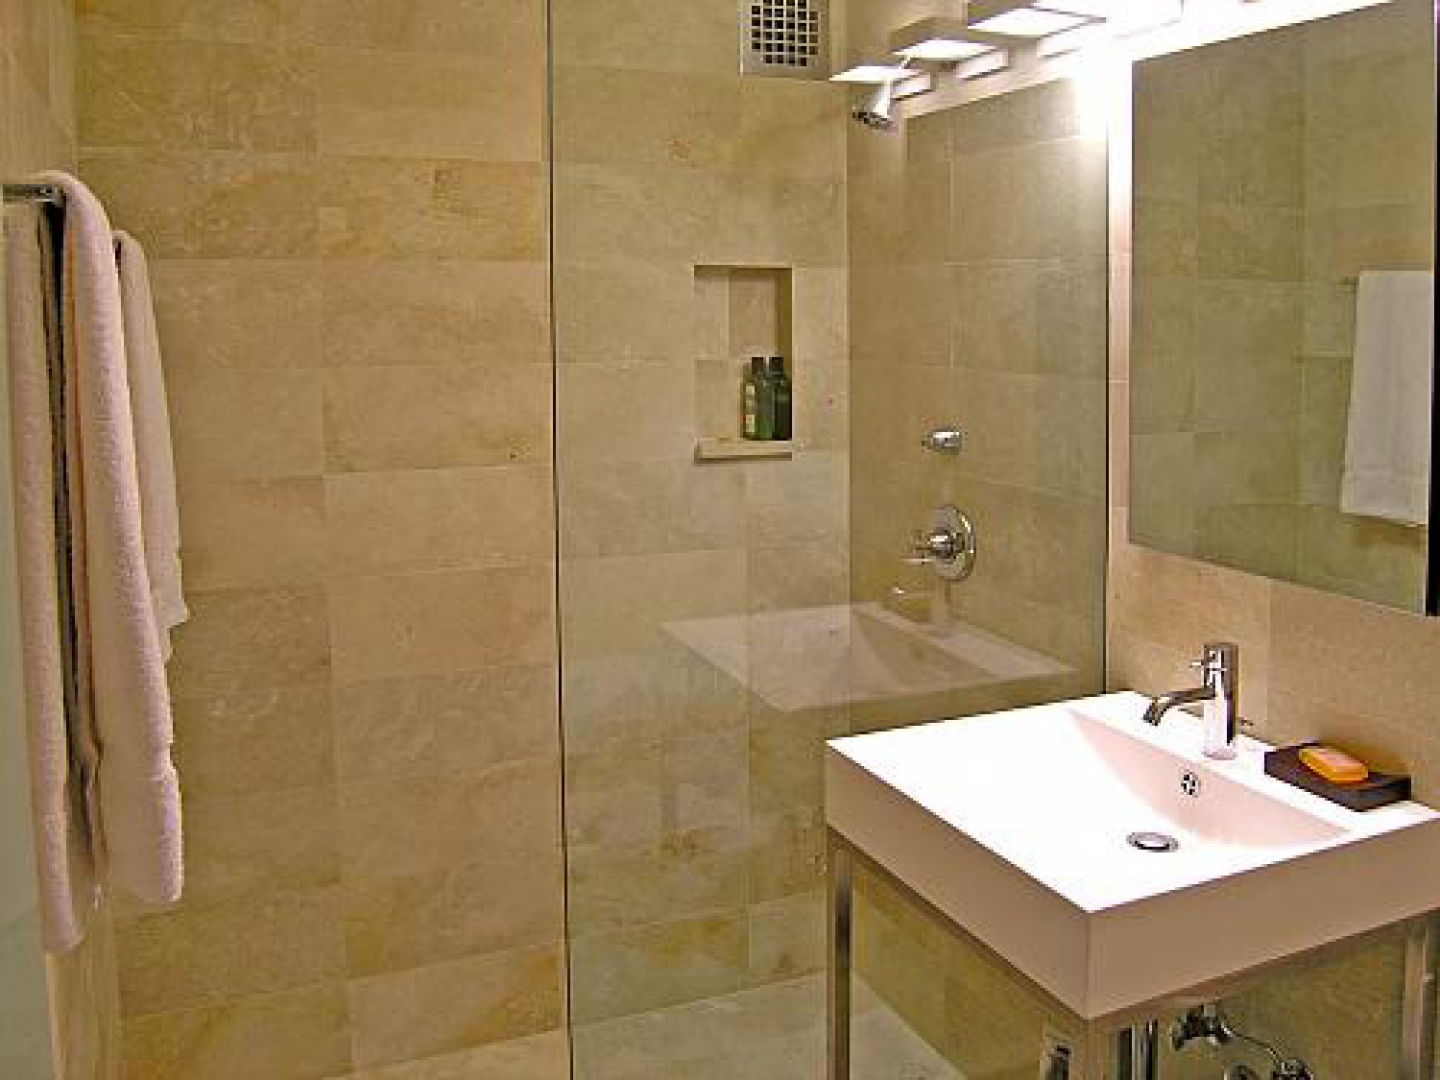 bathroom-wonderful-bathroom-decoration-with-travertine-tile-bathroom-best-design-bathroom-interior-floor-design-captivating-bathroom-decoration-with-beige-travertine-tile-bathroom-wall-along-with-r